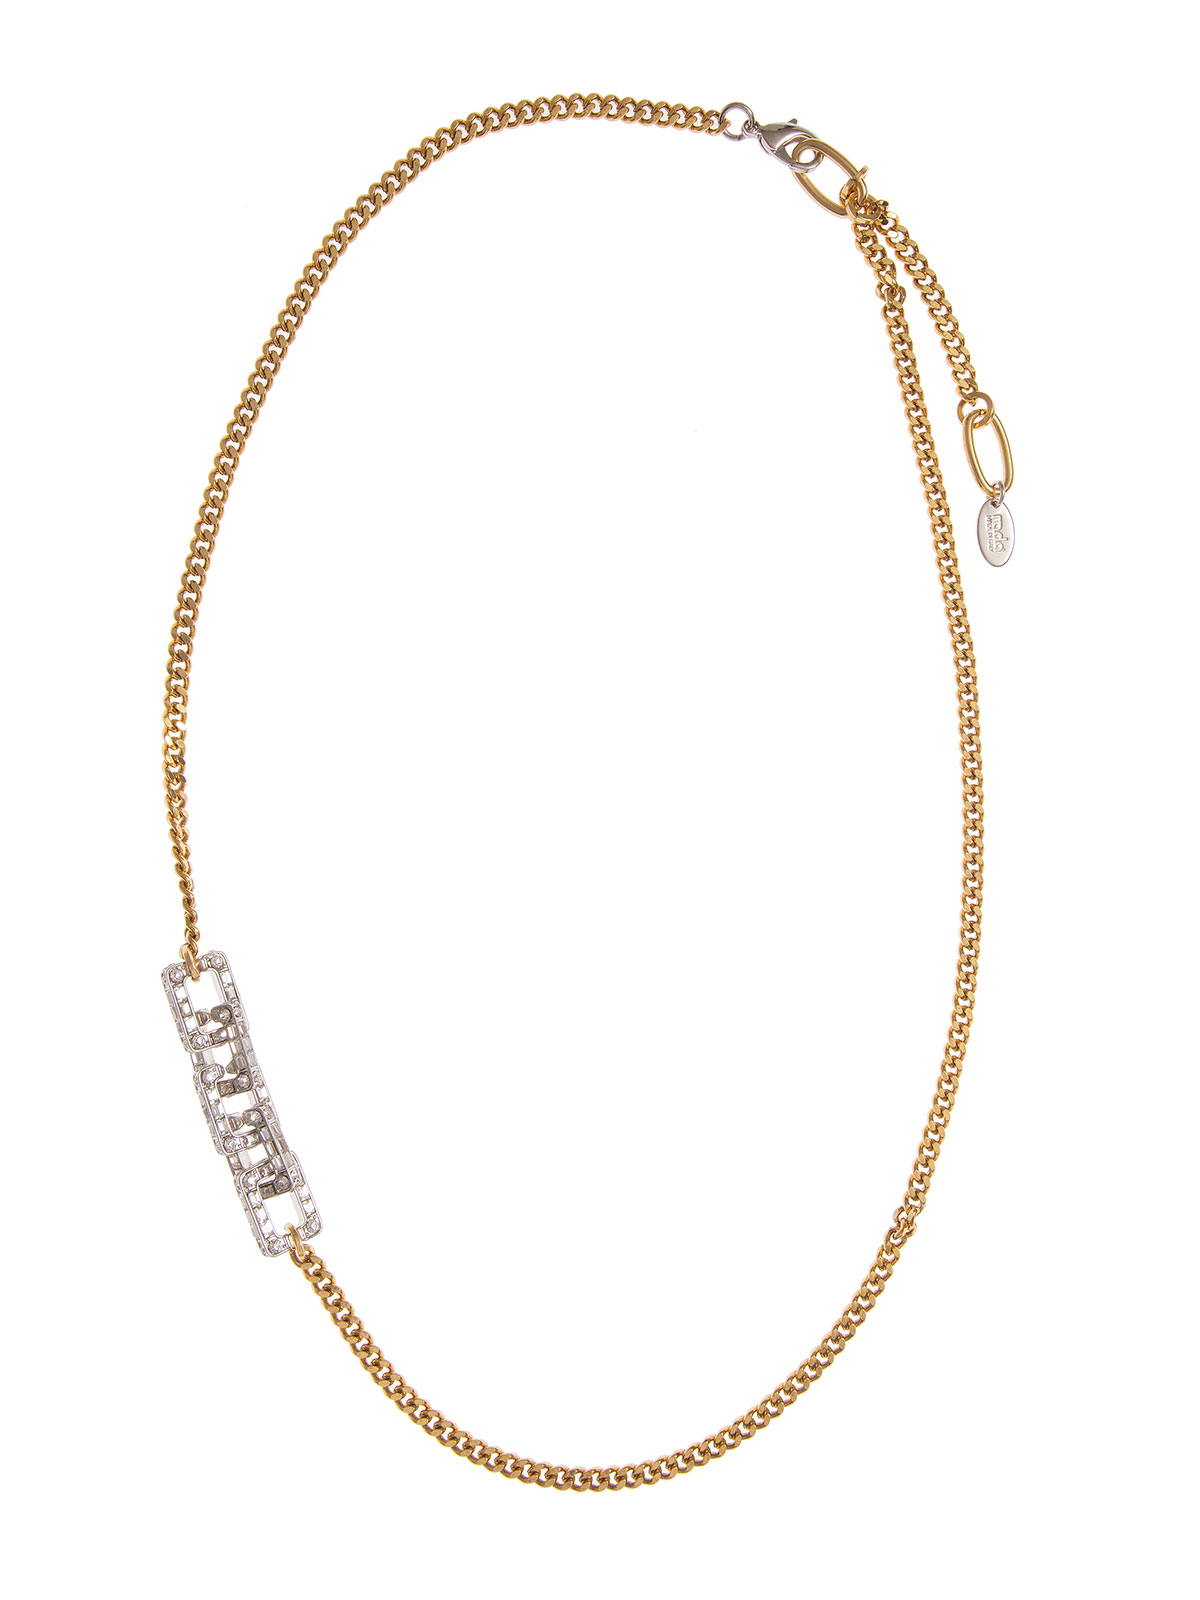 Chain necklace with crystals